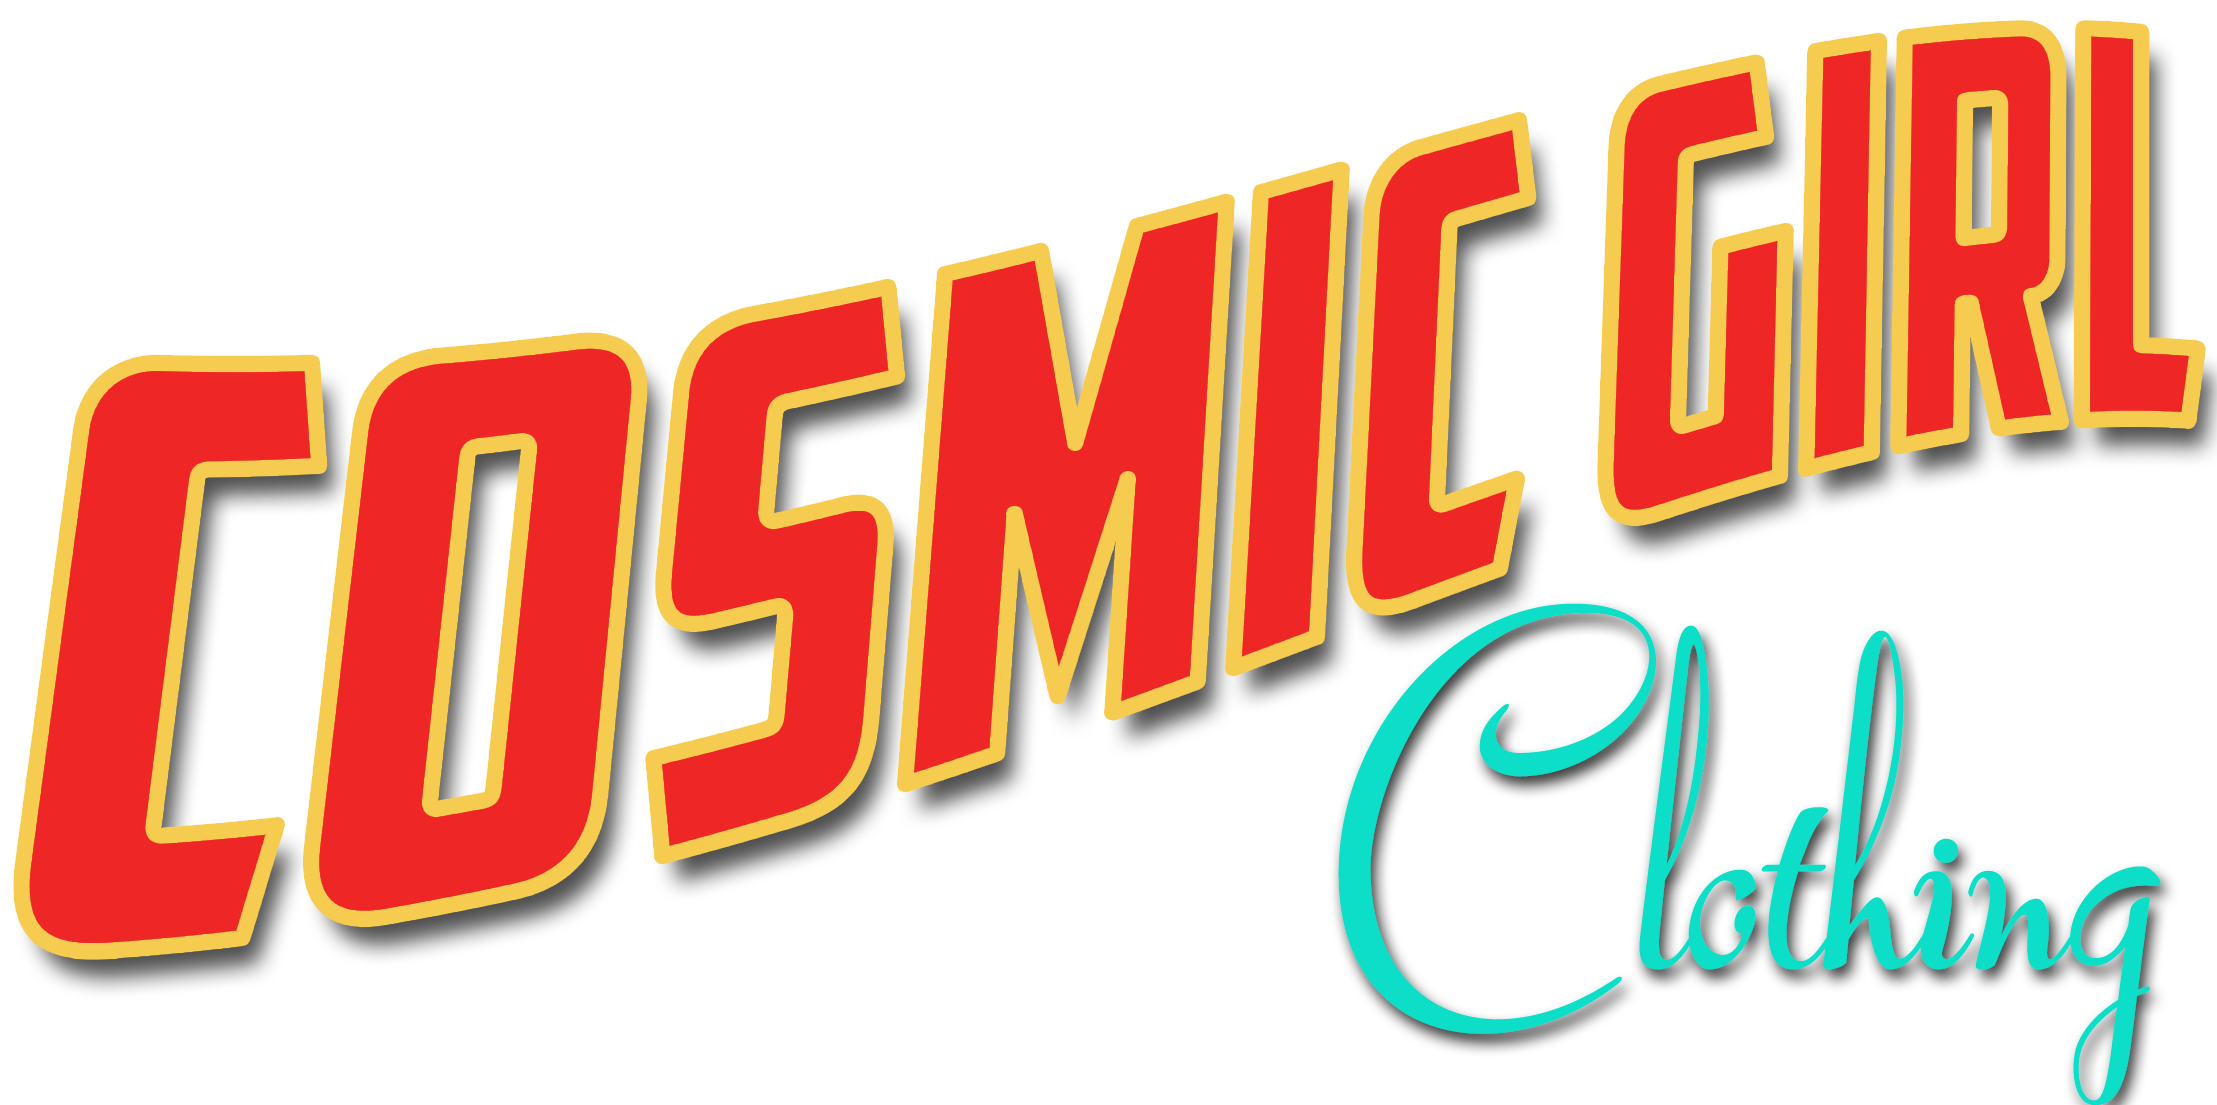 Cosmic Girl Clothing